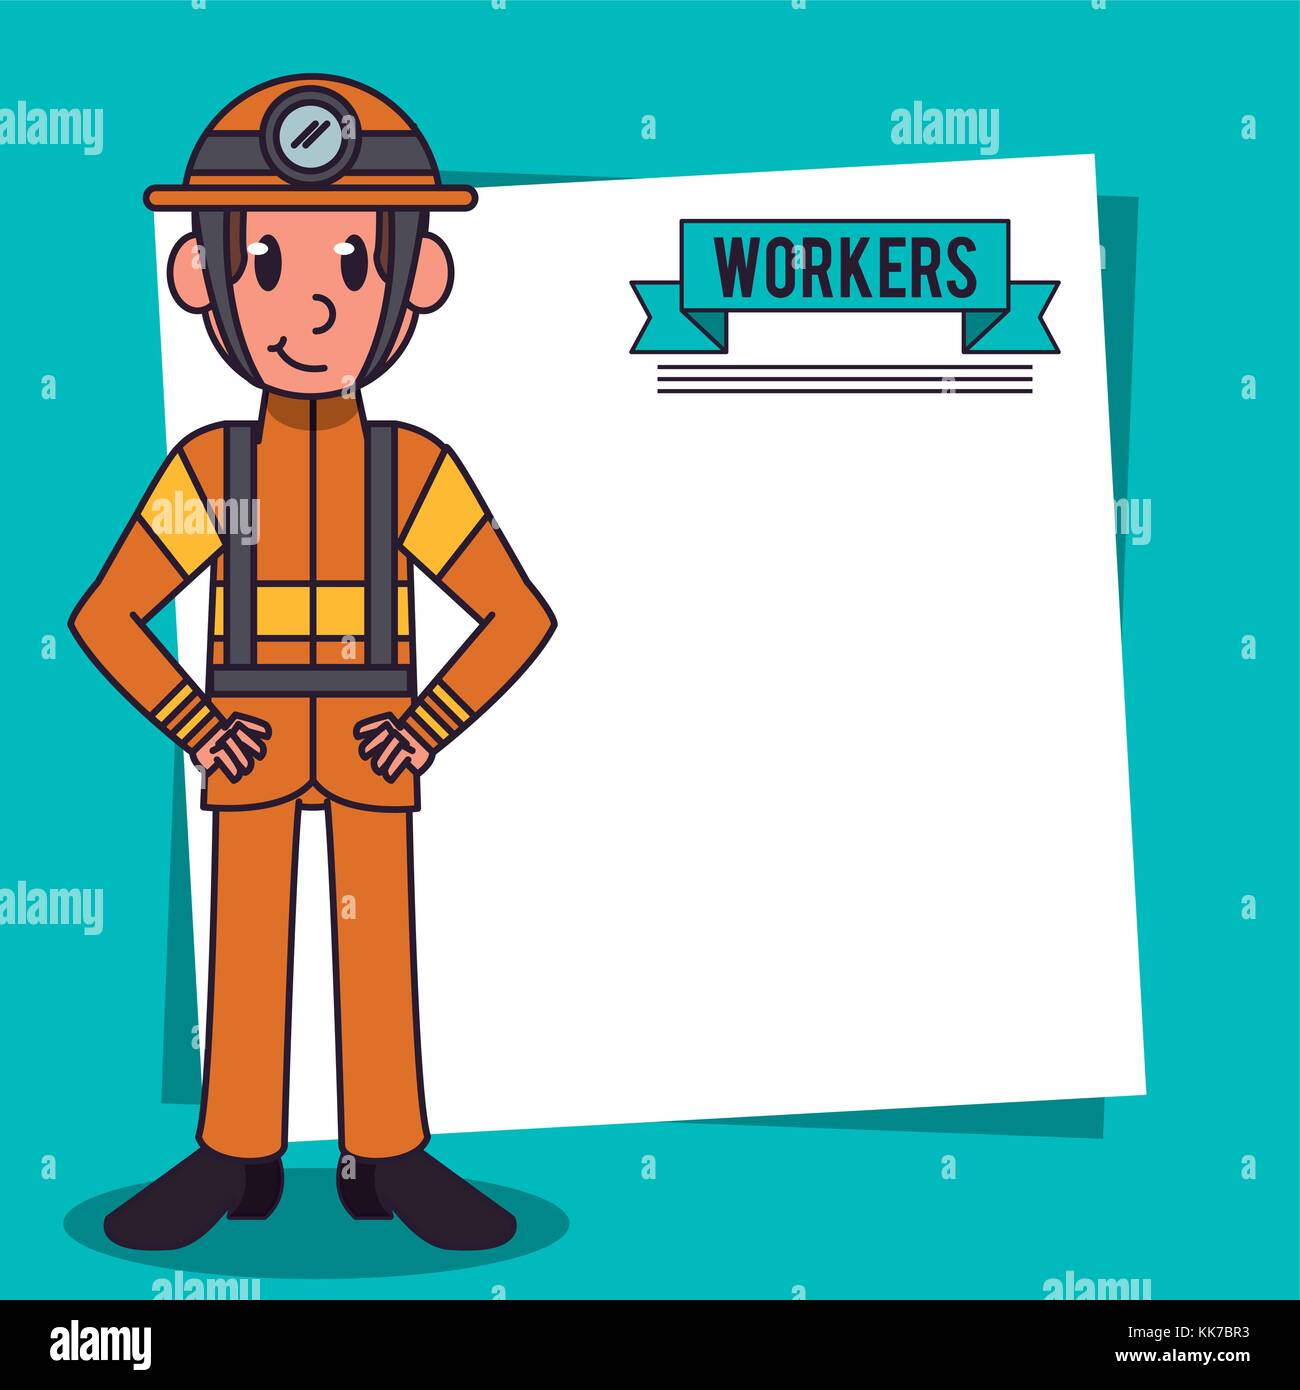 Workers and jobs cartoon - Stock Image